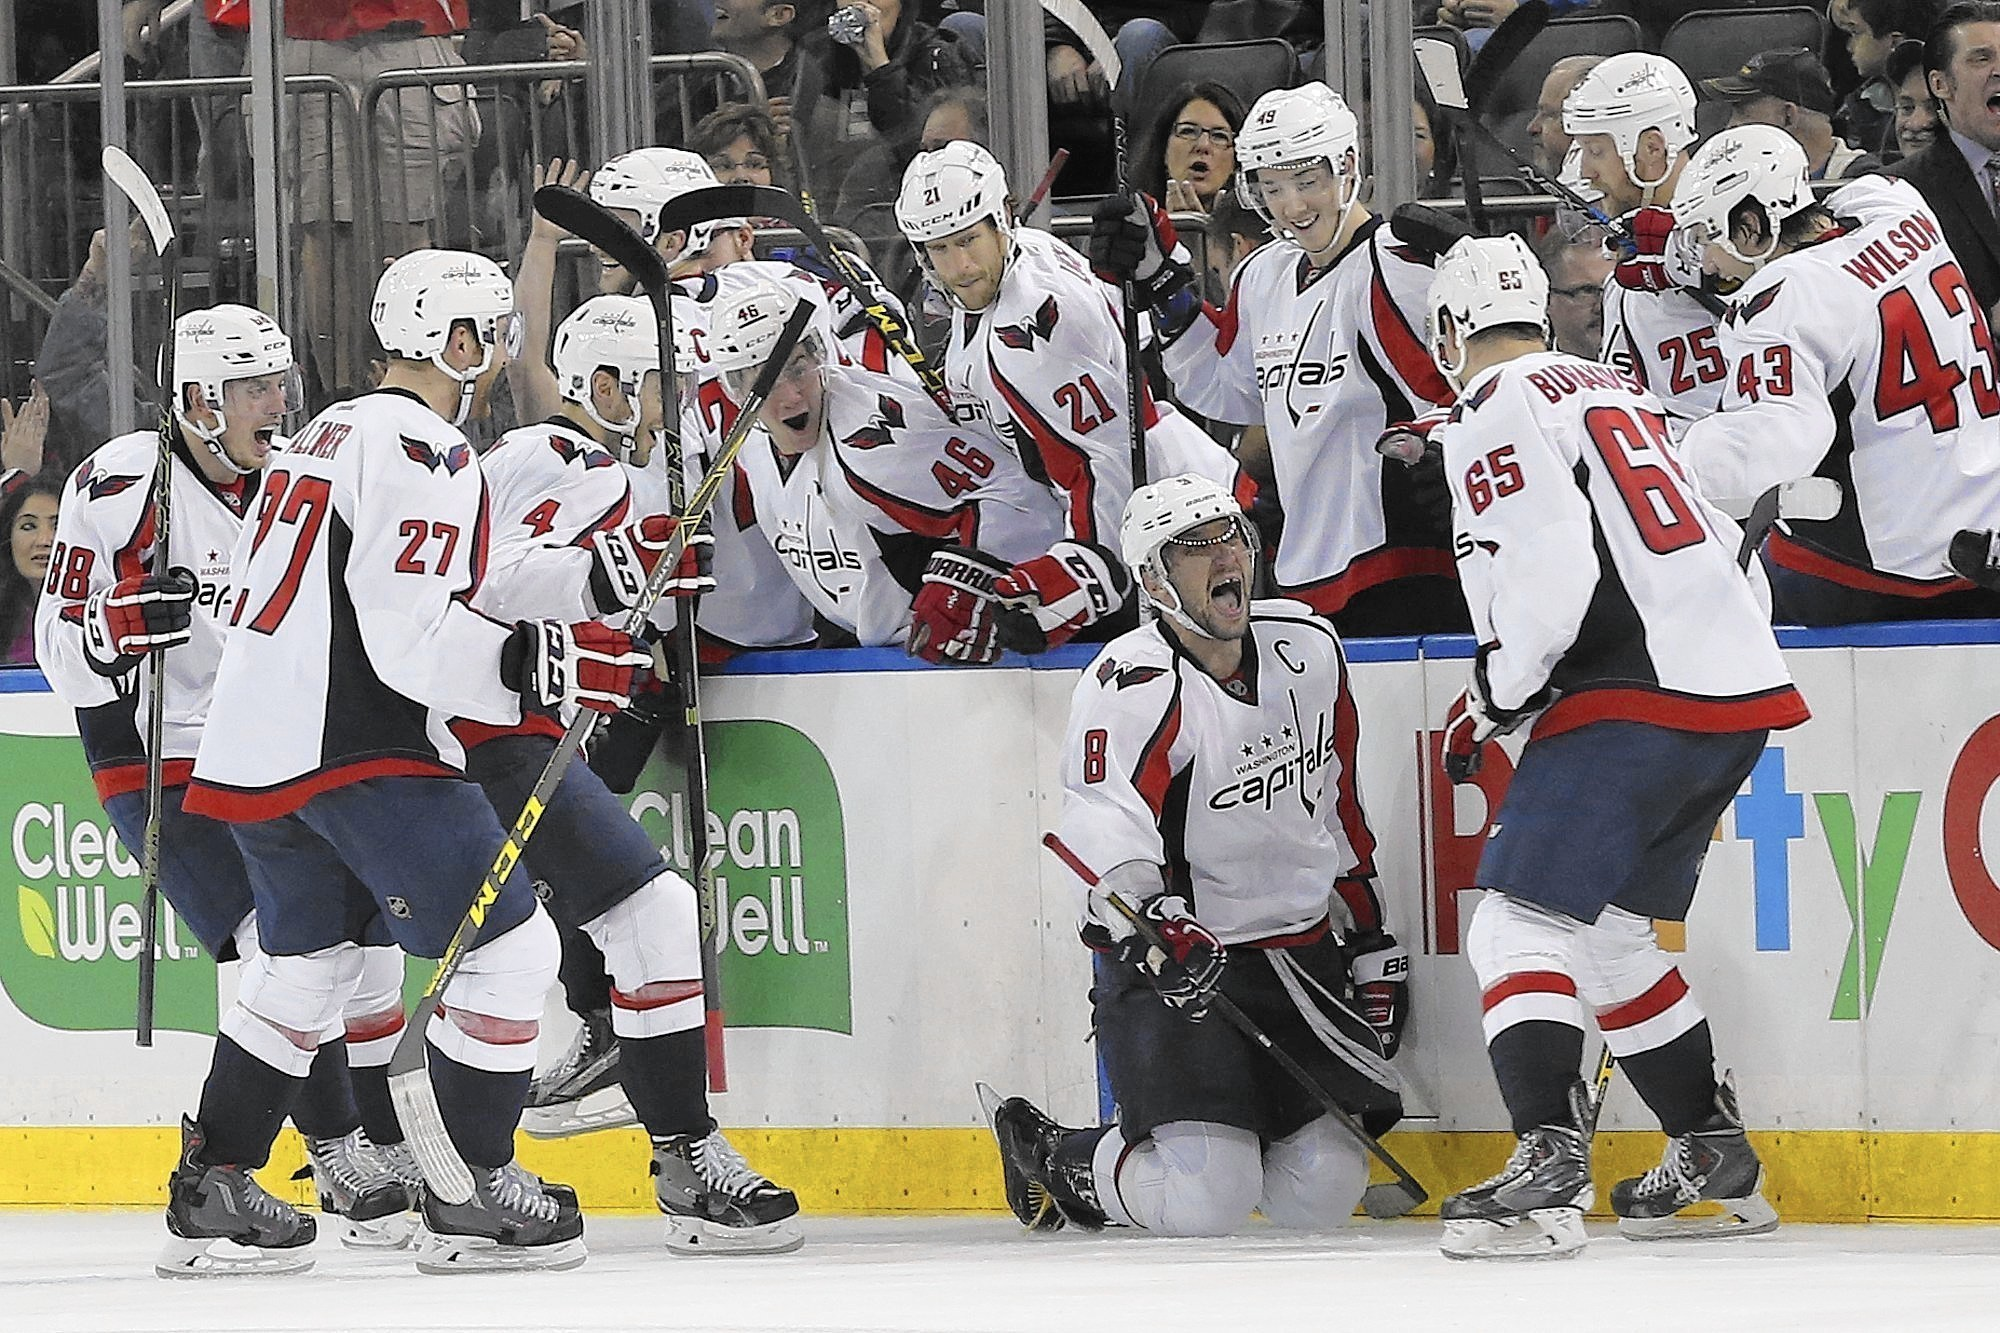 Ovechkin scores in overtime to give Capitals a 4-3 win - Capital Gazette 368415e470de